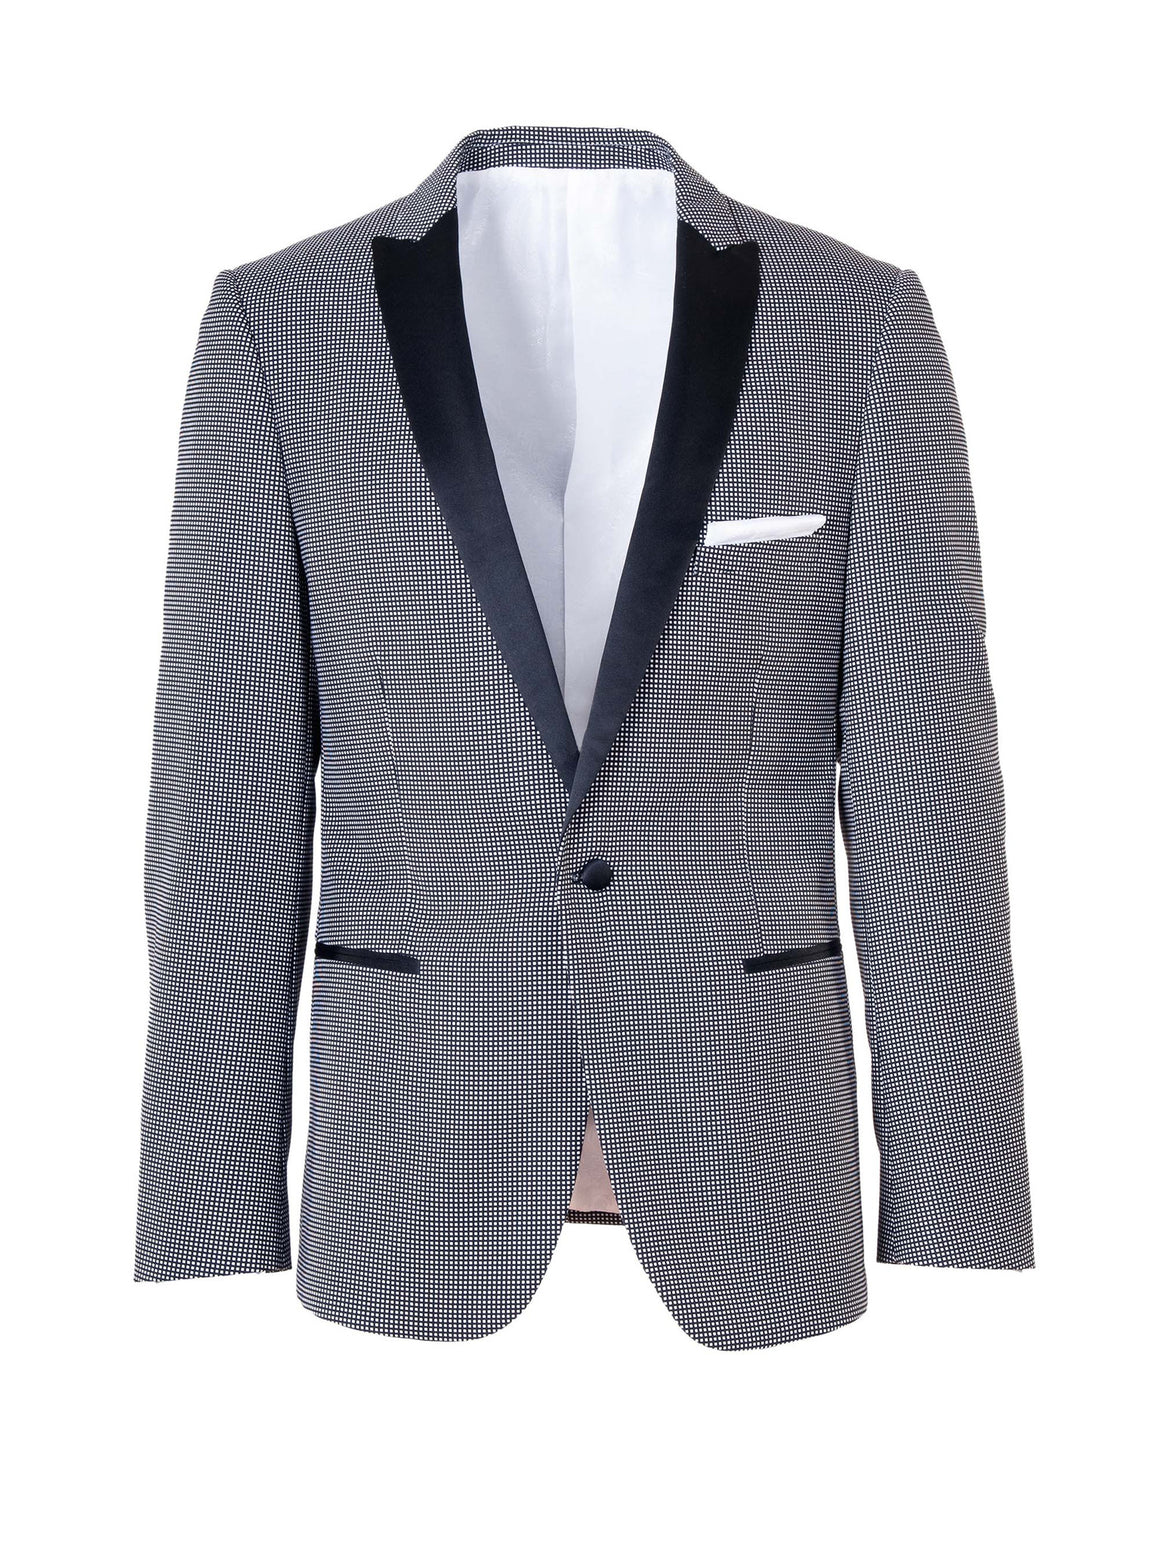 Grosvenor Peak Dinner Jacket - Black & White Squares